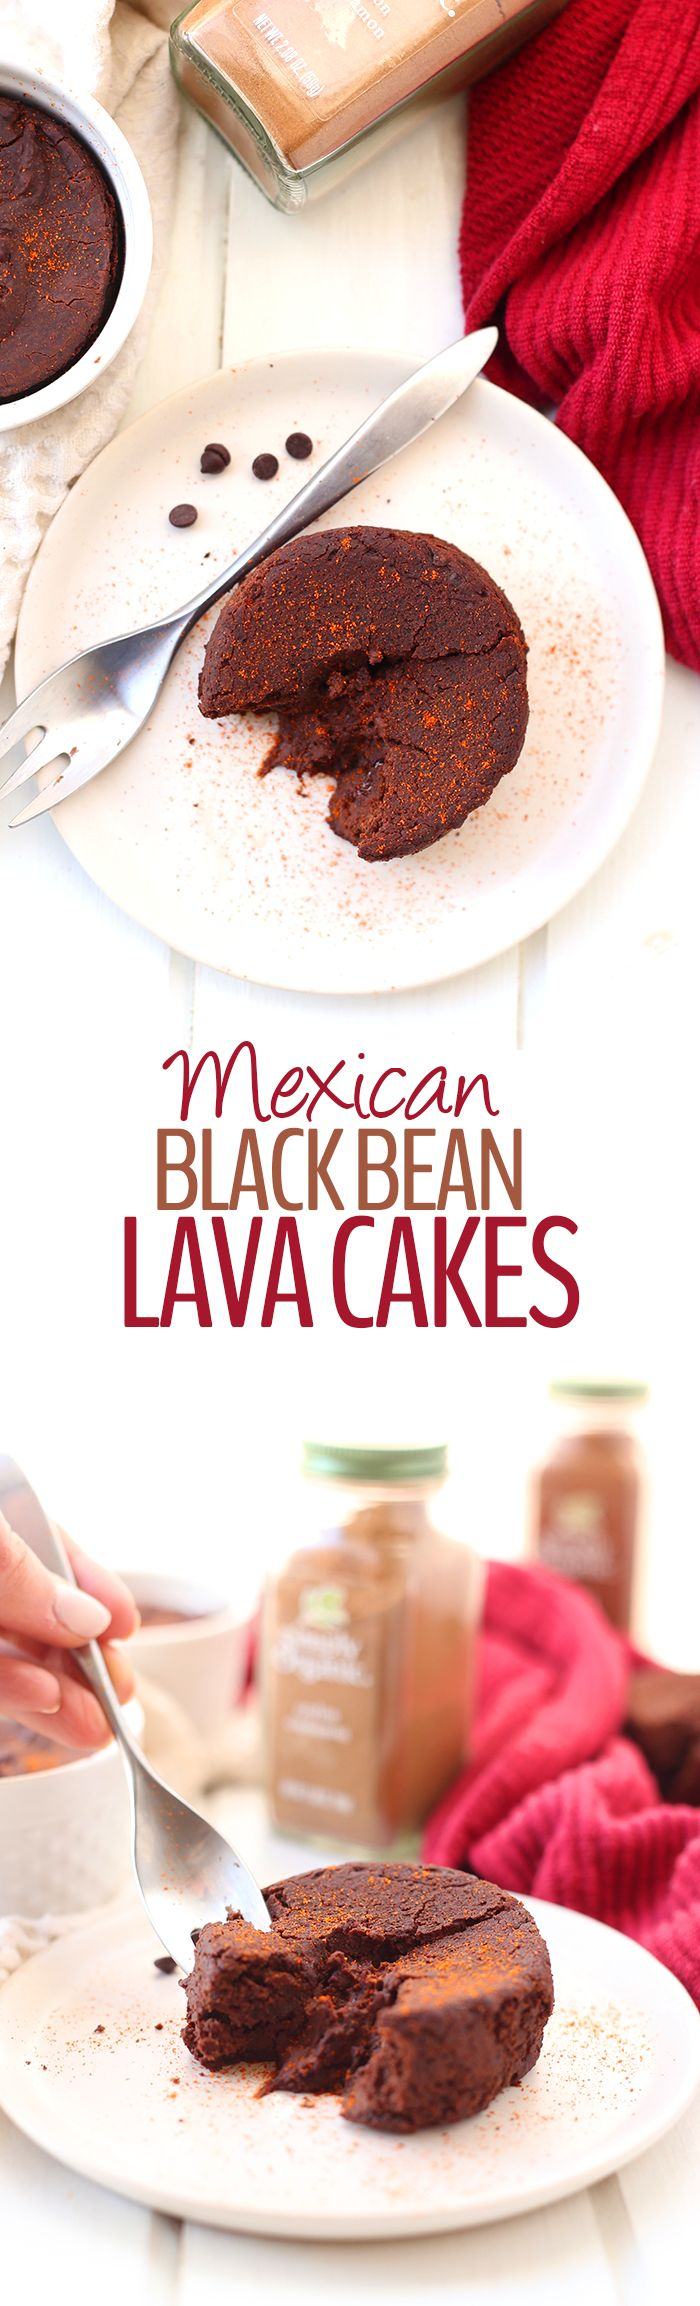 Your favorite chocolatey dessert got a spicy makeover with these Mexican Black Bean Lava Cakes. With a gooey center and a high-protein, healthy shell from black beans, you will only want this dessert recipe from now on.